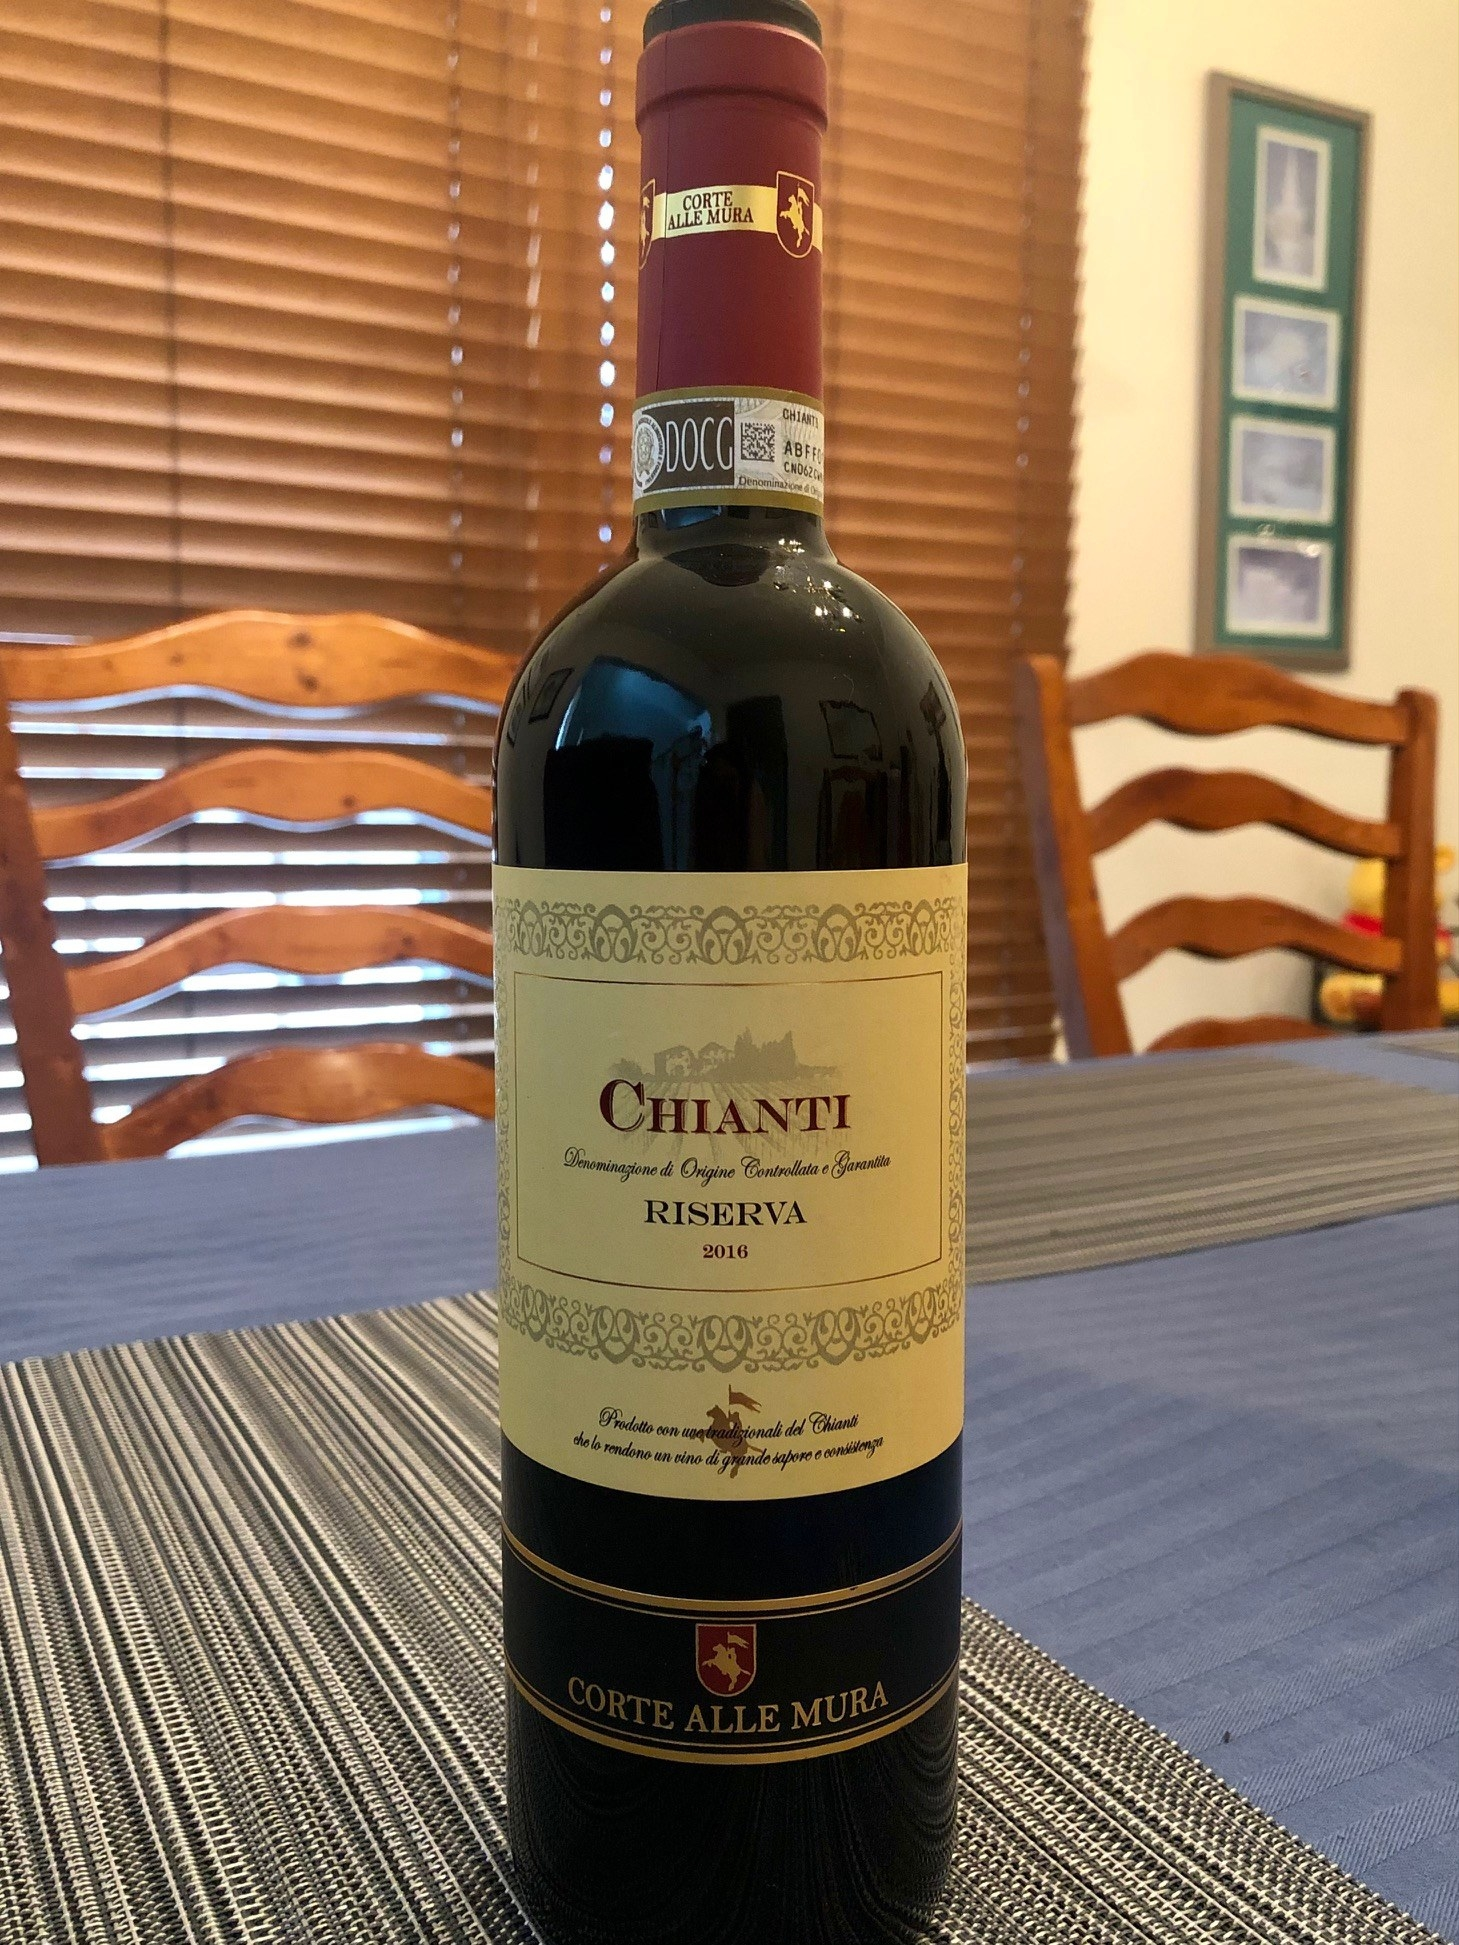 Bottle of Chianti wine